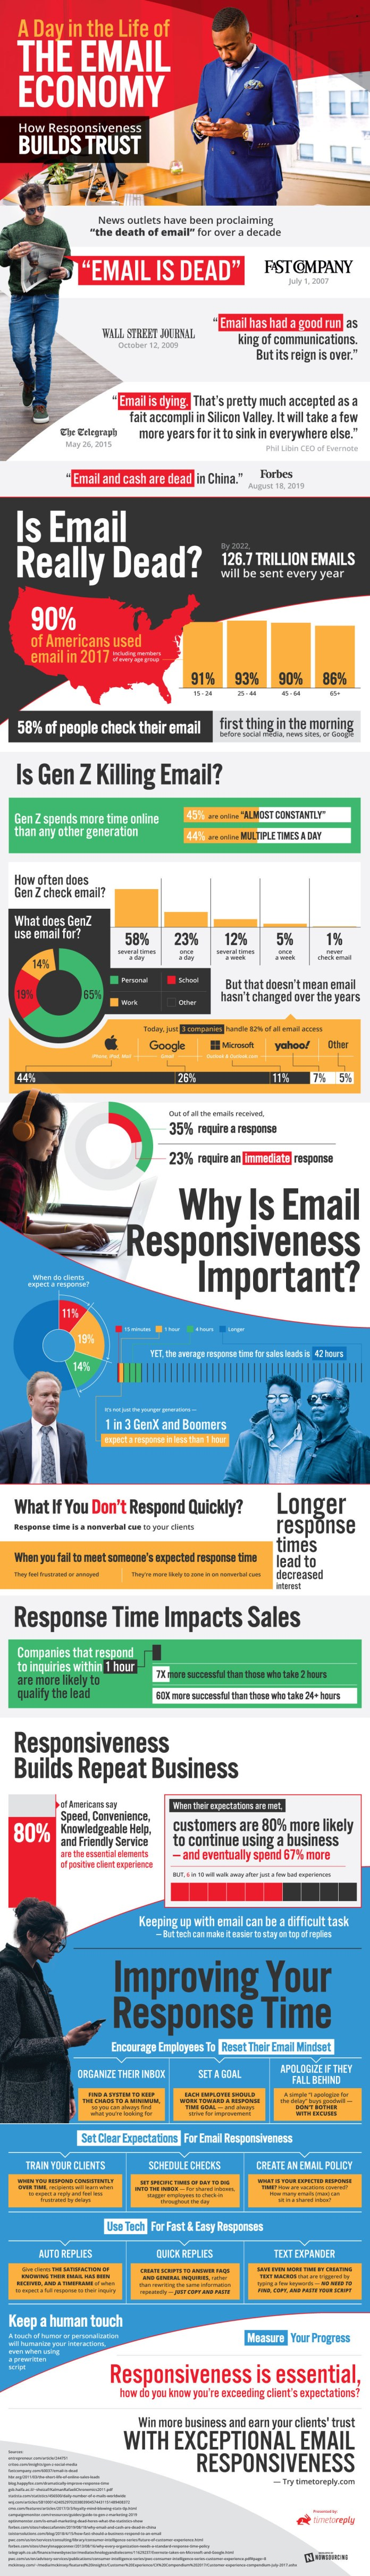 The Status of The Email Economy 1